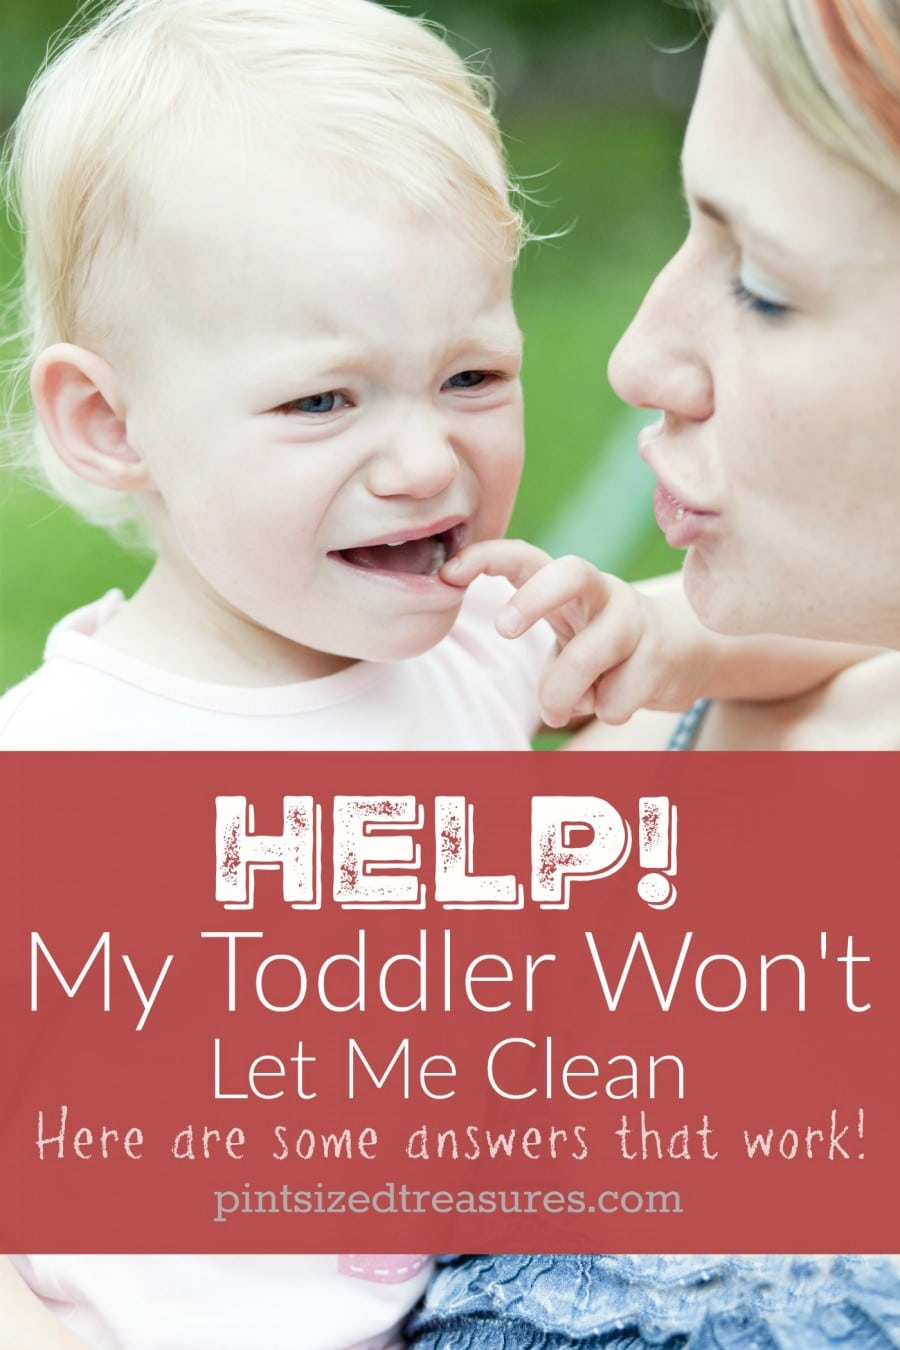 solutions for moms when toddlers won't let them clean